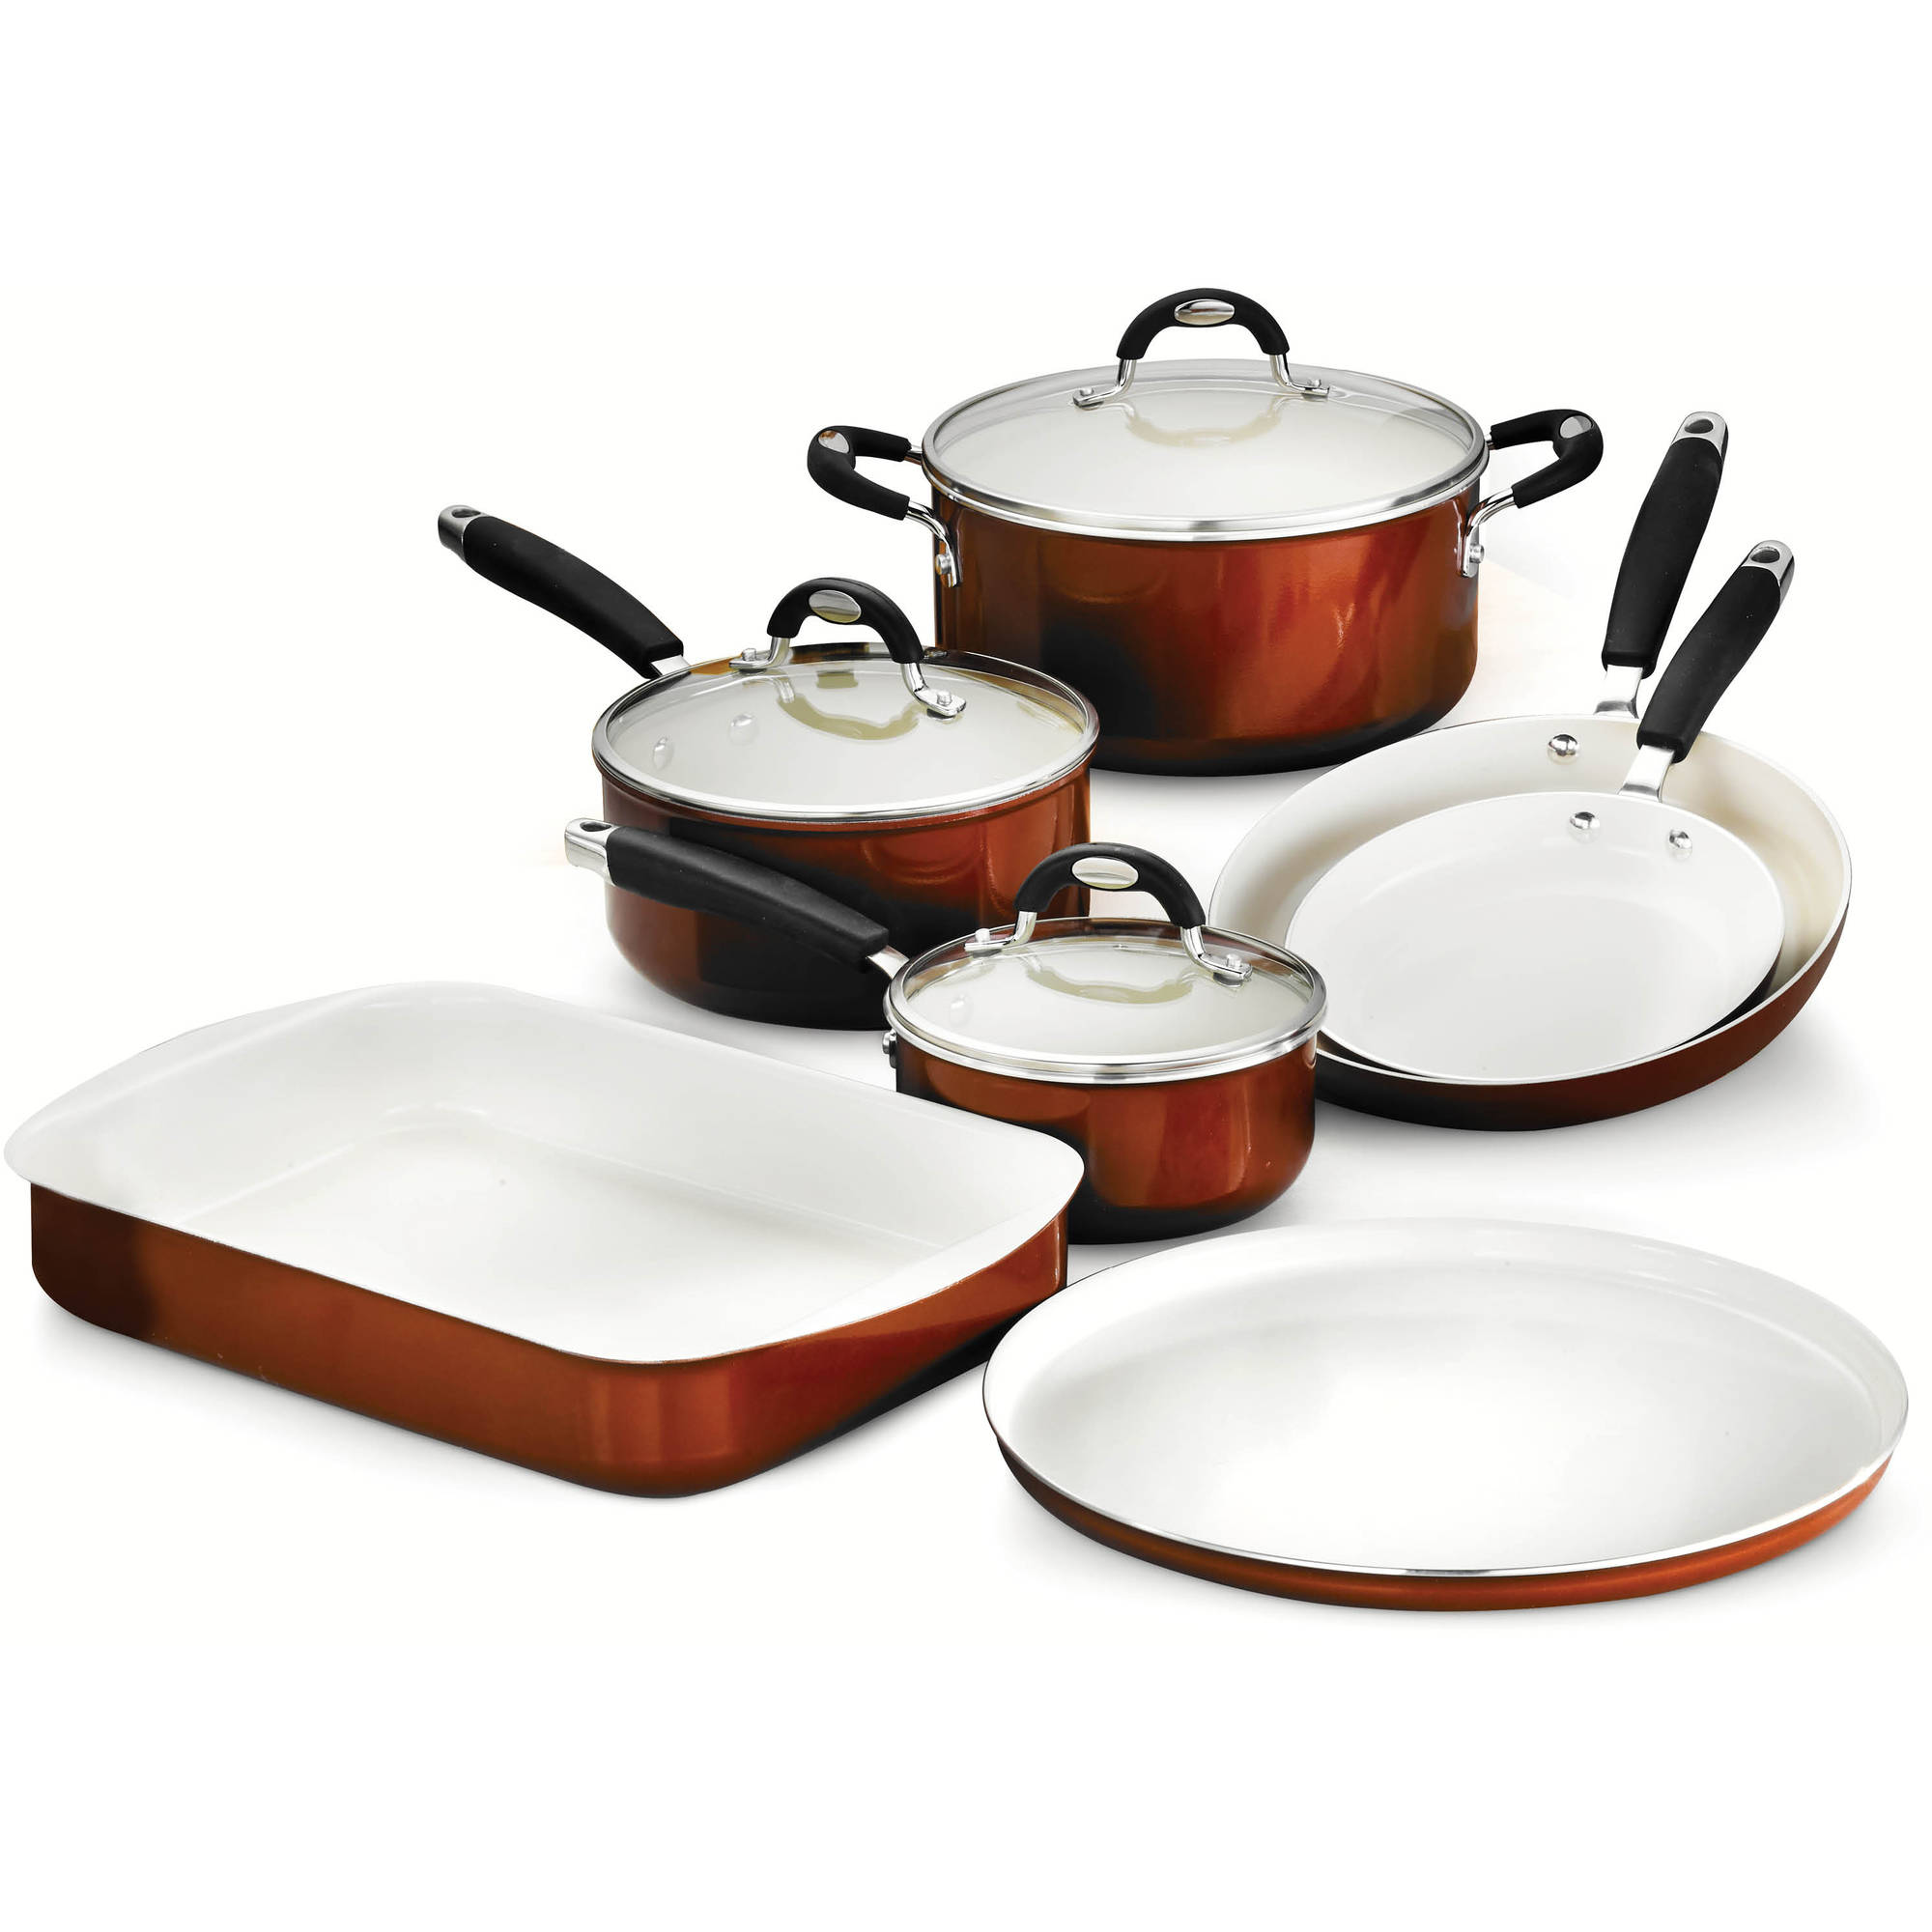 Tramontina Style 10-Piece Cookware/Bakeware Set, Metallic Copper